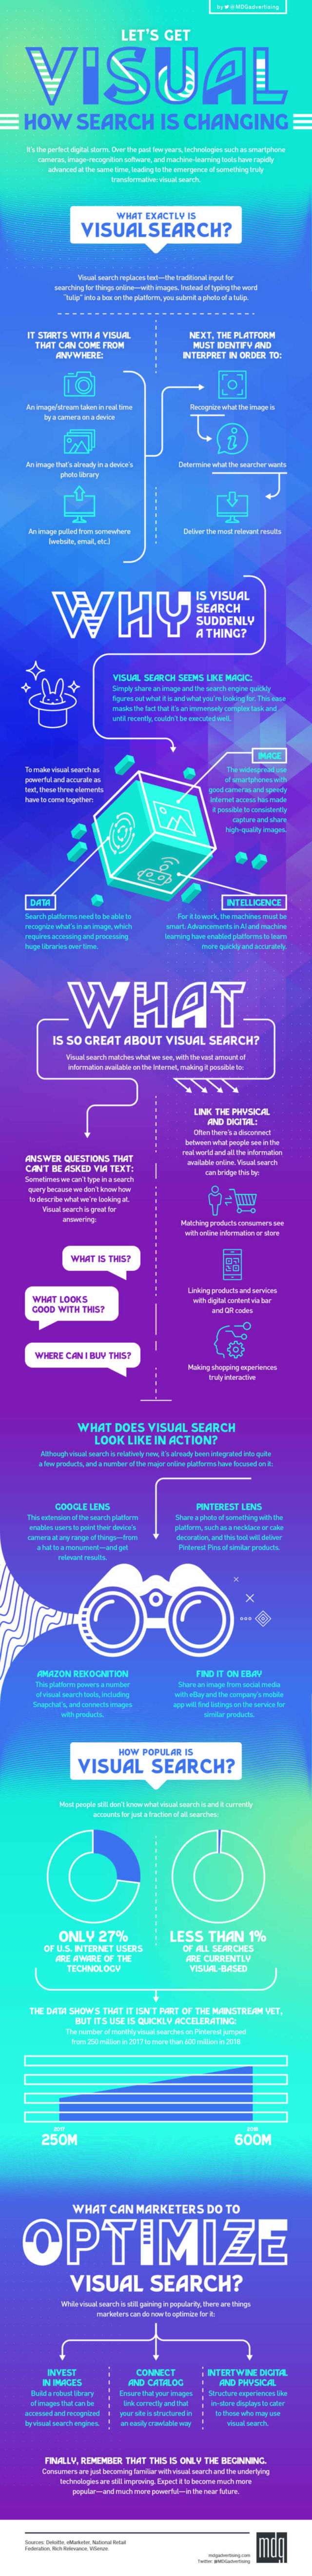 Let's get visual- how search is changing